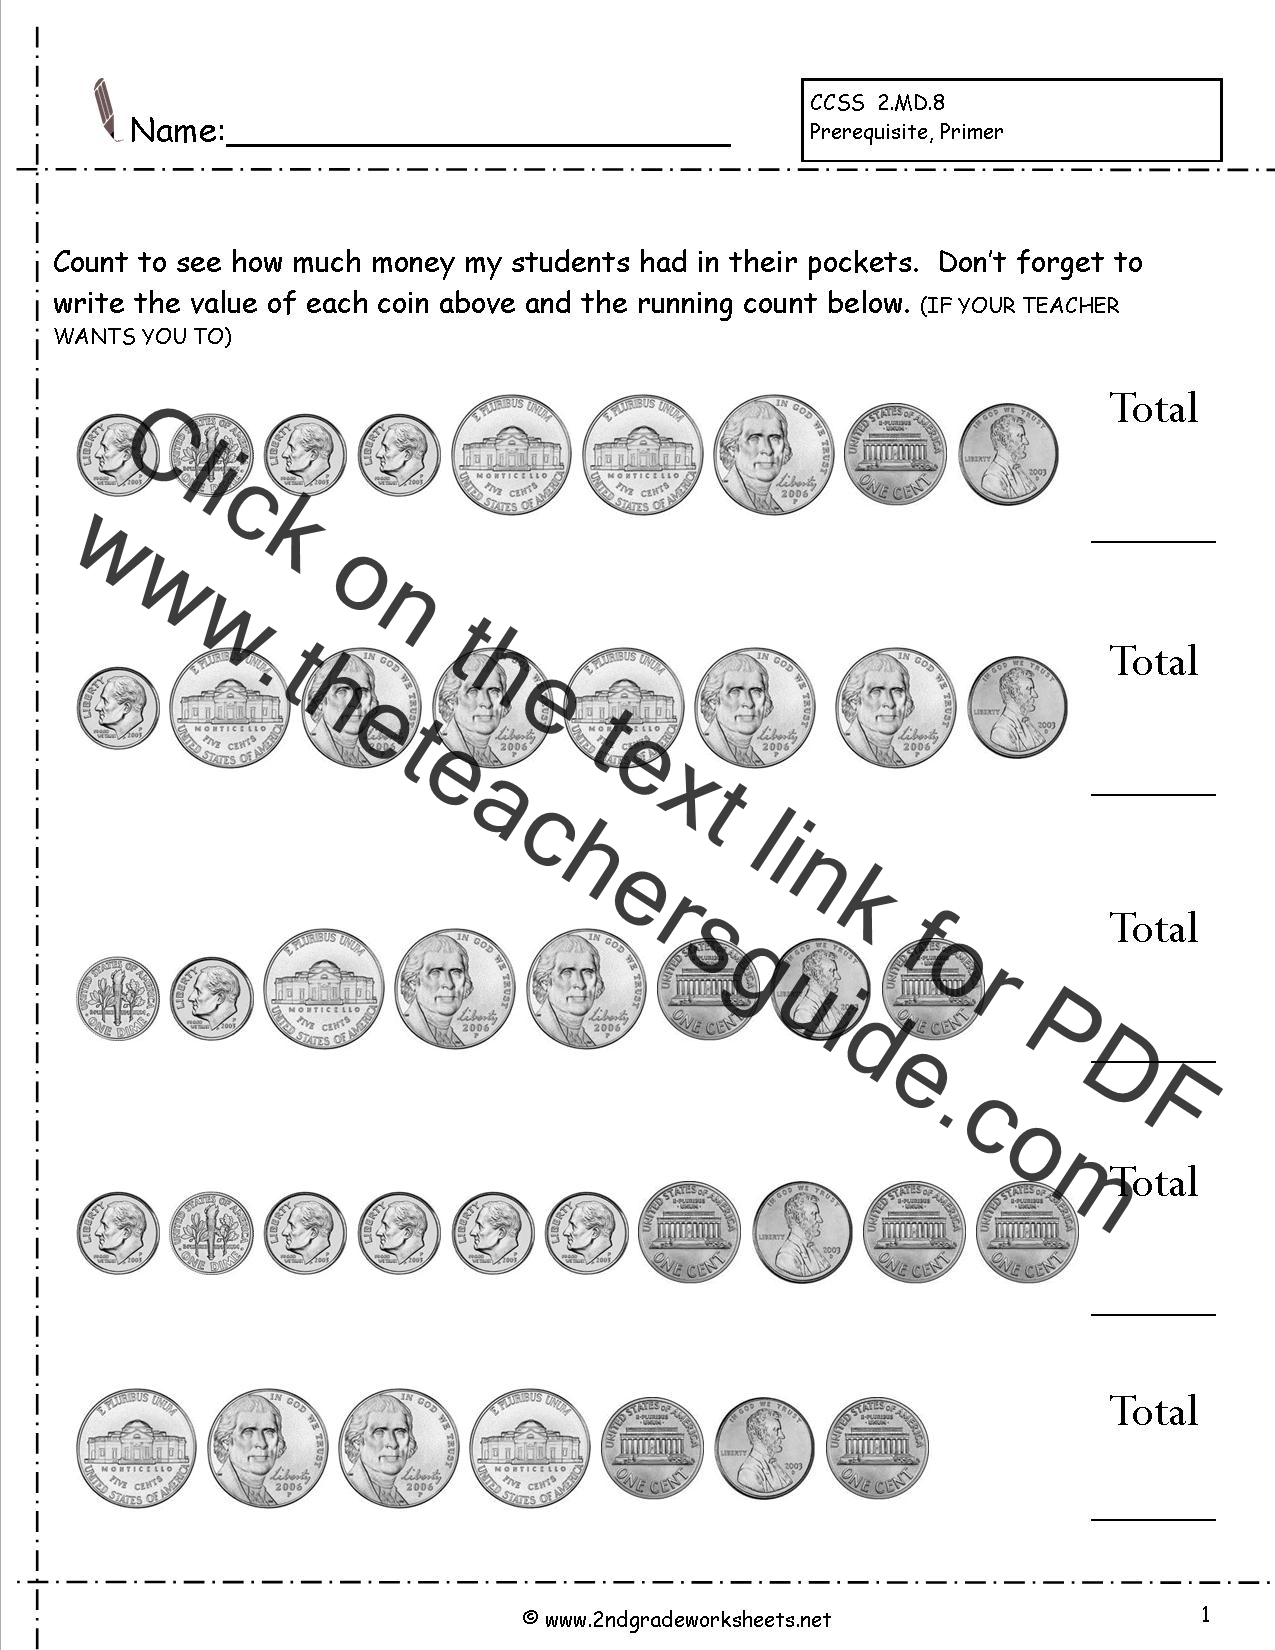 Worksheets Free Counting Money Worksheets counting coins and money worksheets printouts without quarters